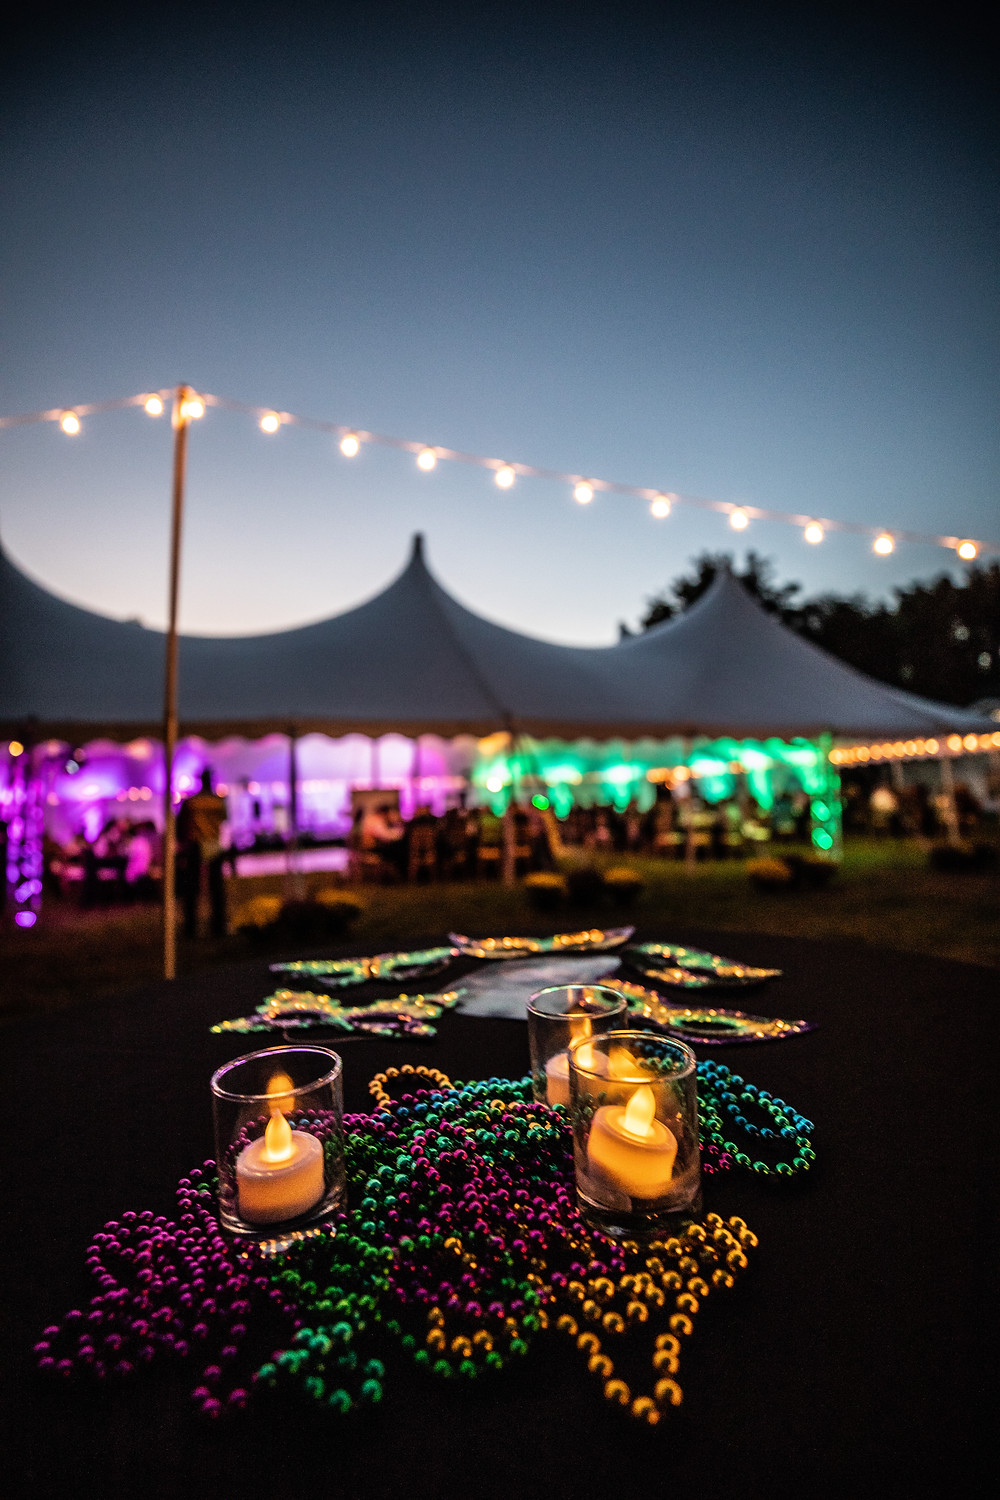 Photo of beaded necklaces, lit electric candles, and Mardi Gras masks strewn on a table; in the background a string of lights and the illuminated party tent are visible beneath the fading blue sky.